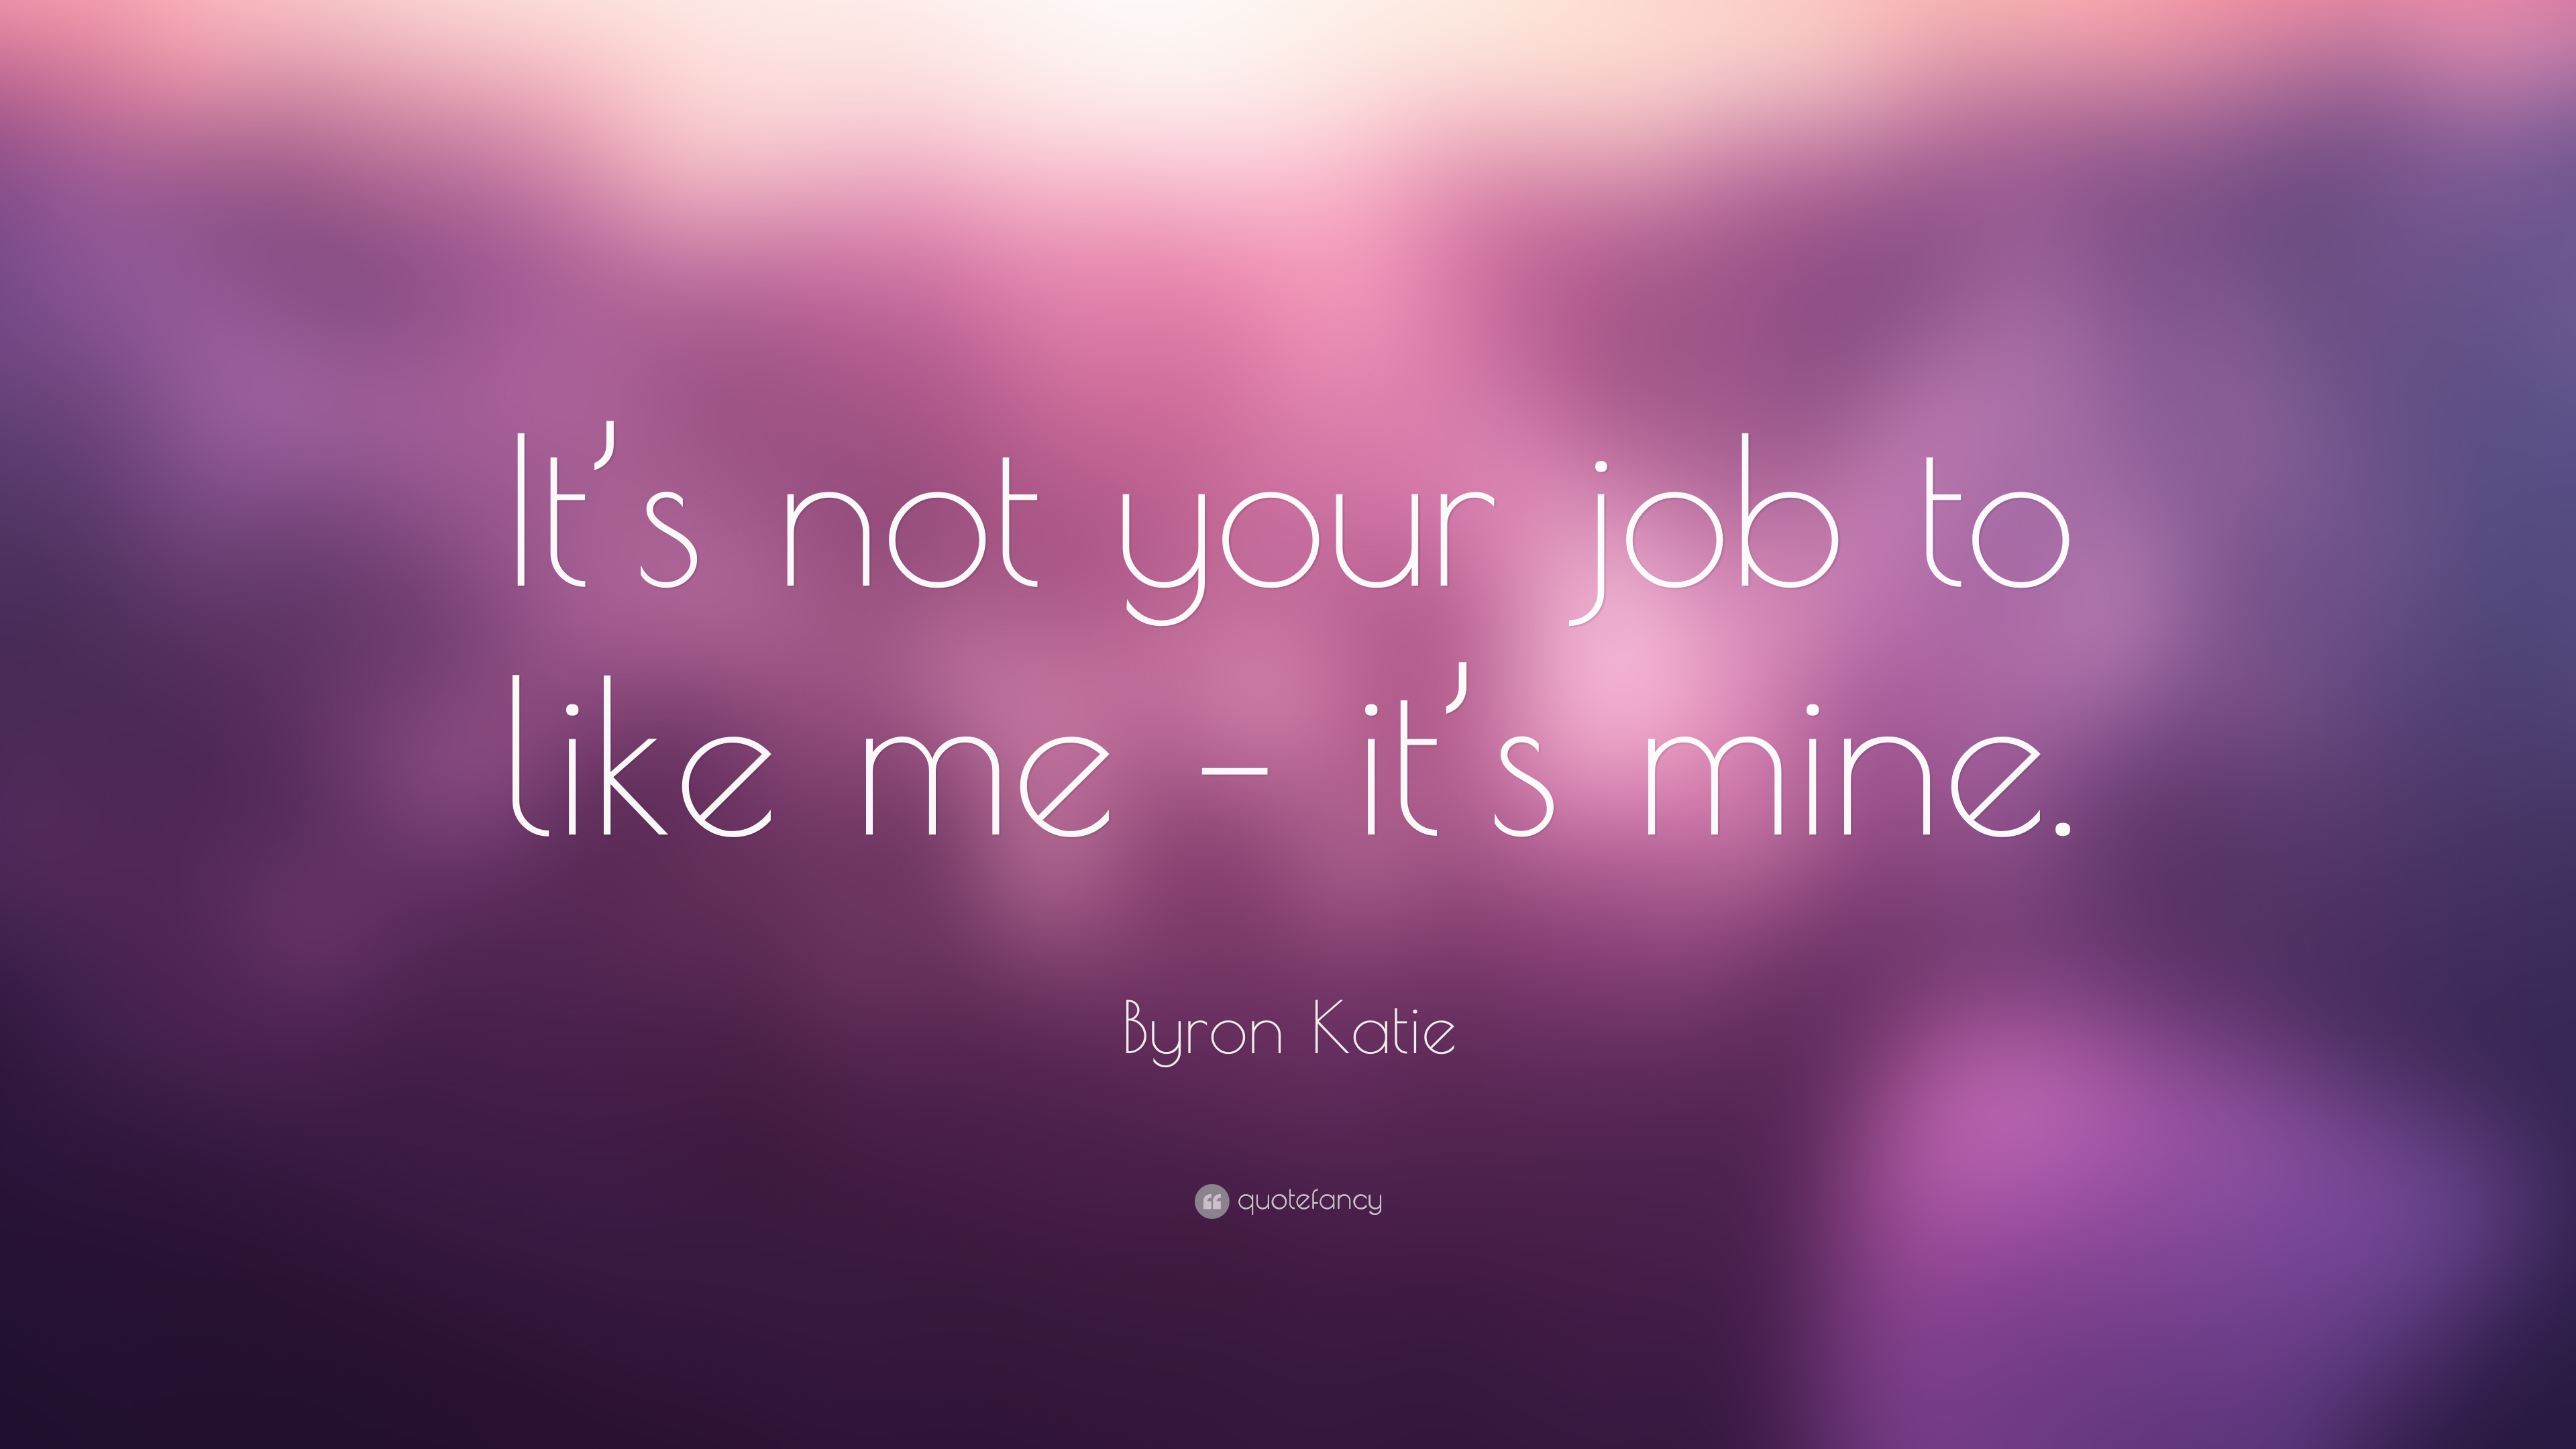 Bad Time Quotes Wallpaper Byron Katie Quote It S Not Your Job To Like Me It S